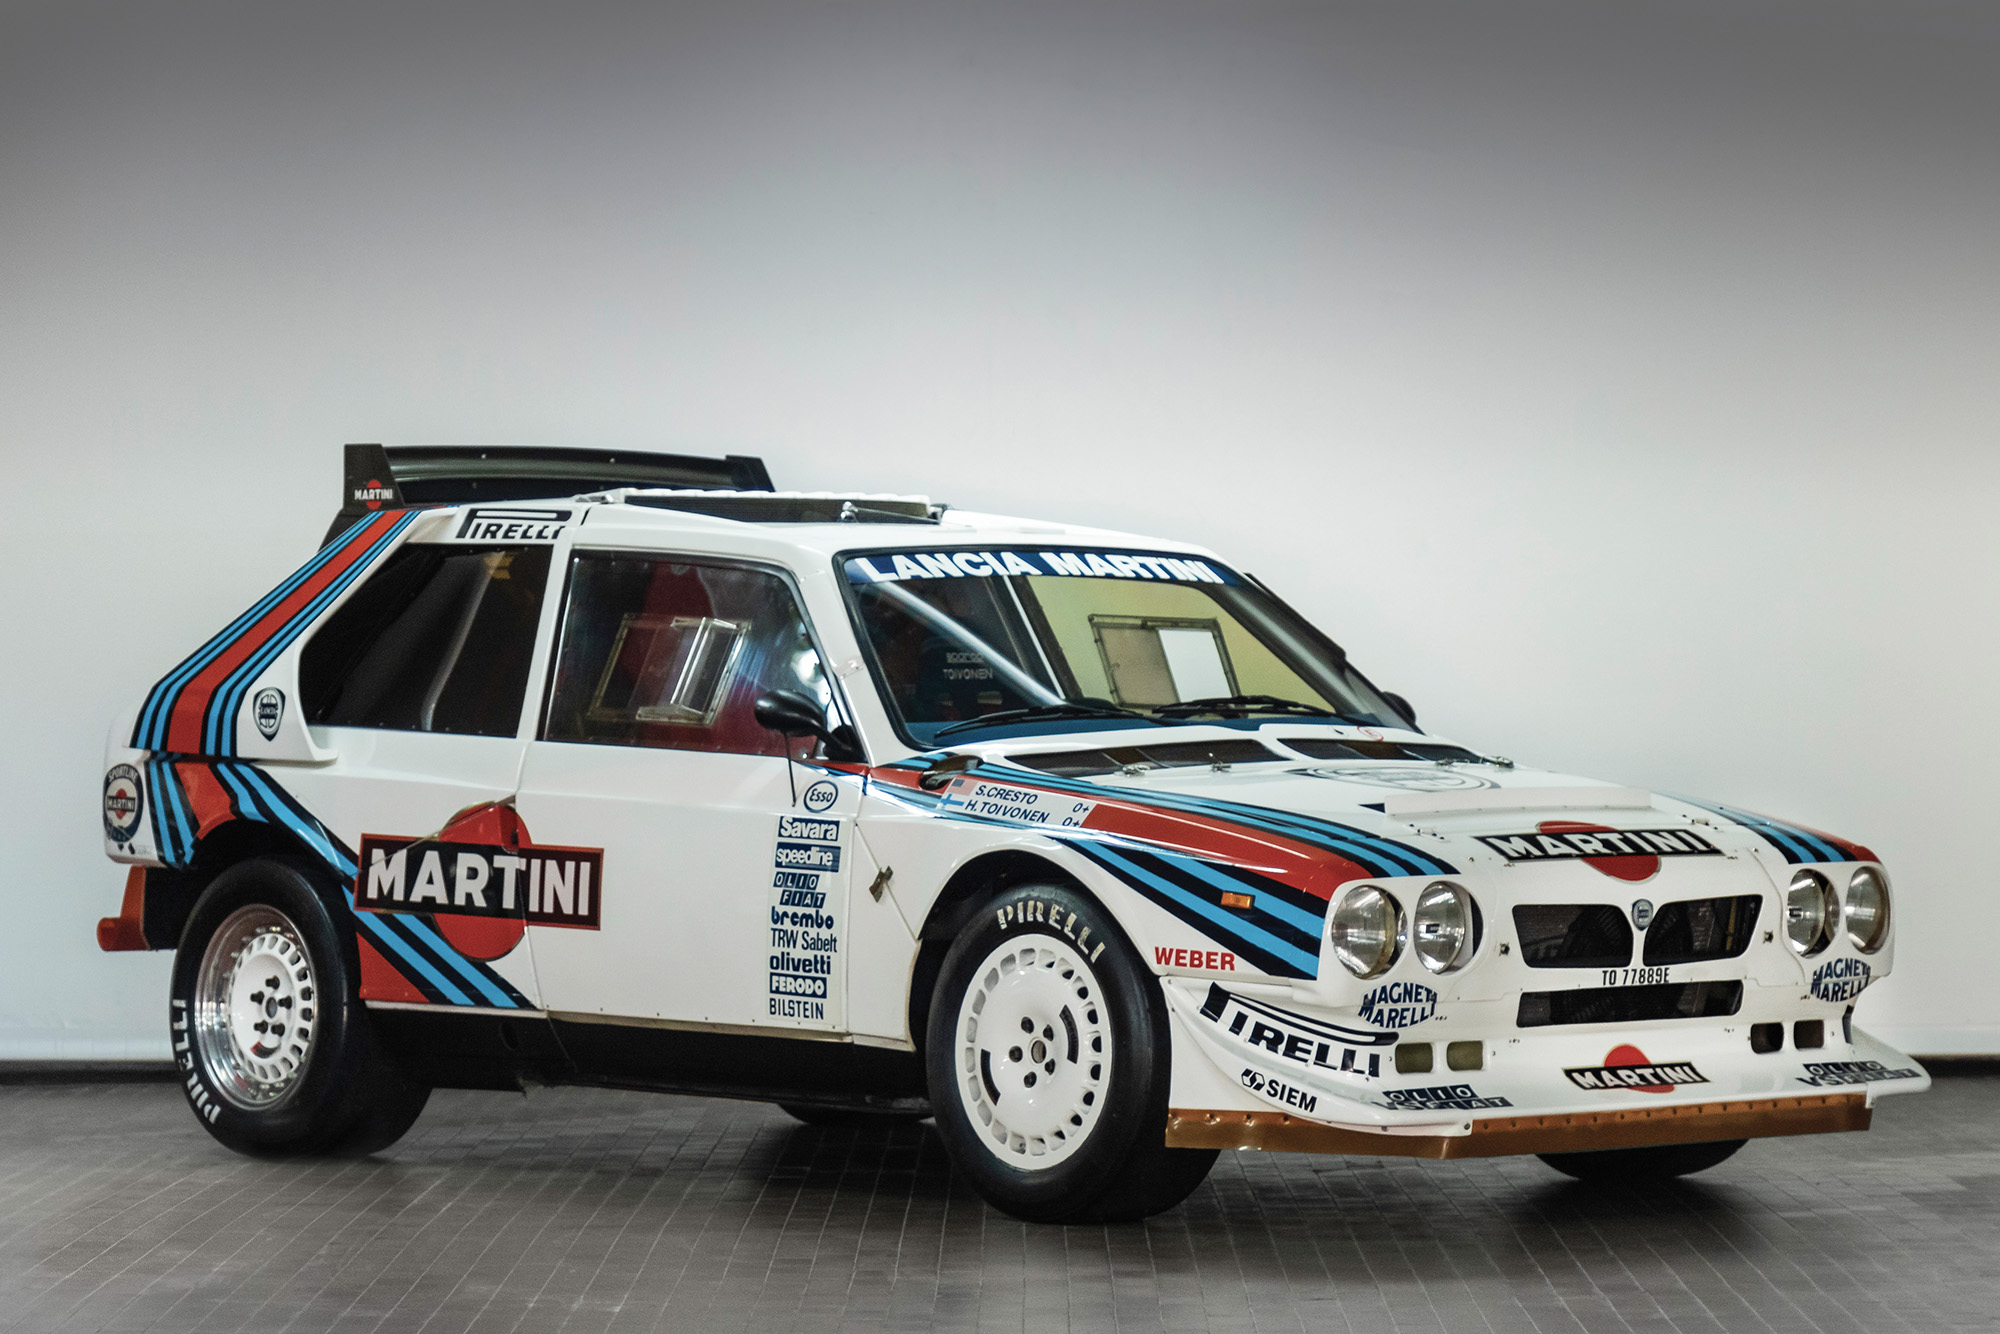 1985 RAC Rally-winning Lancia Delta S4 due to be auctioned